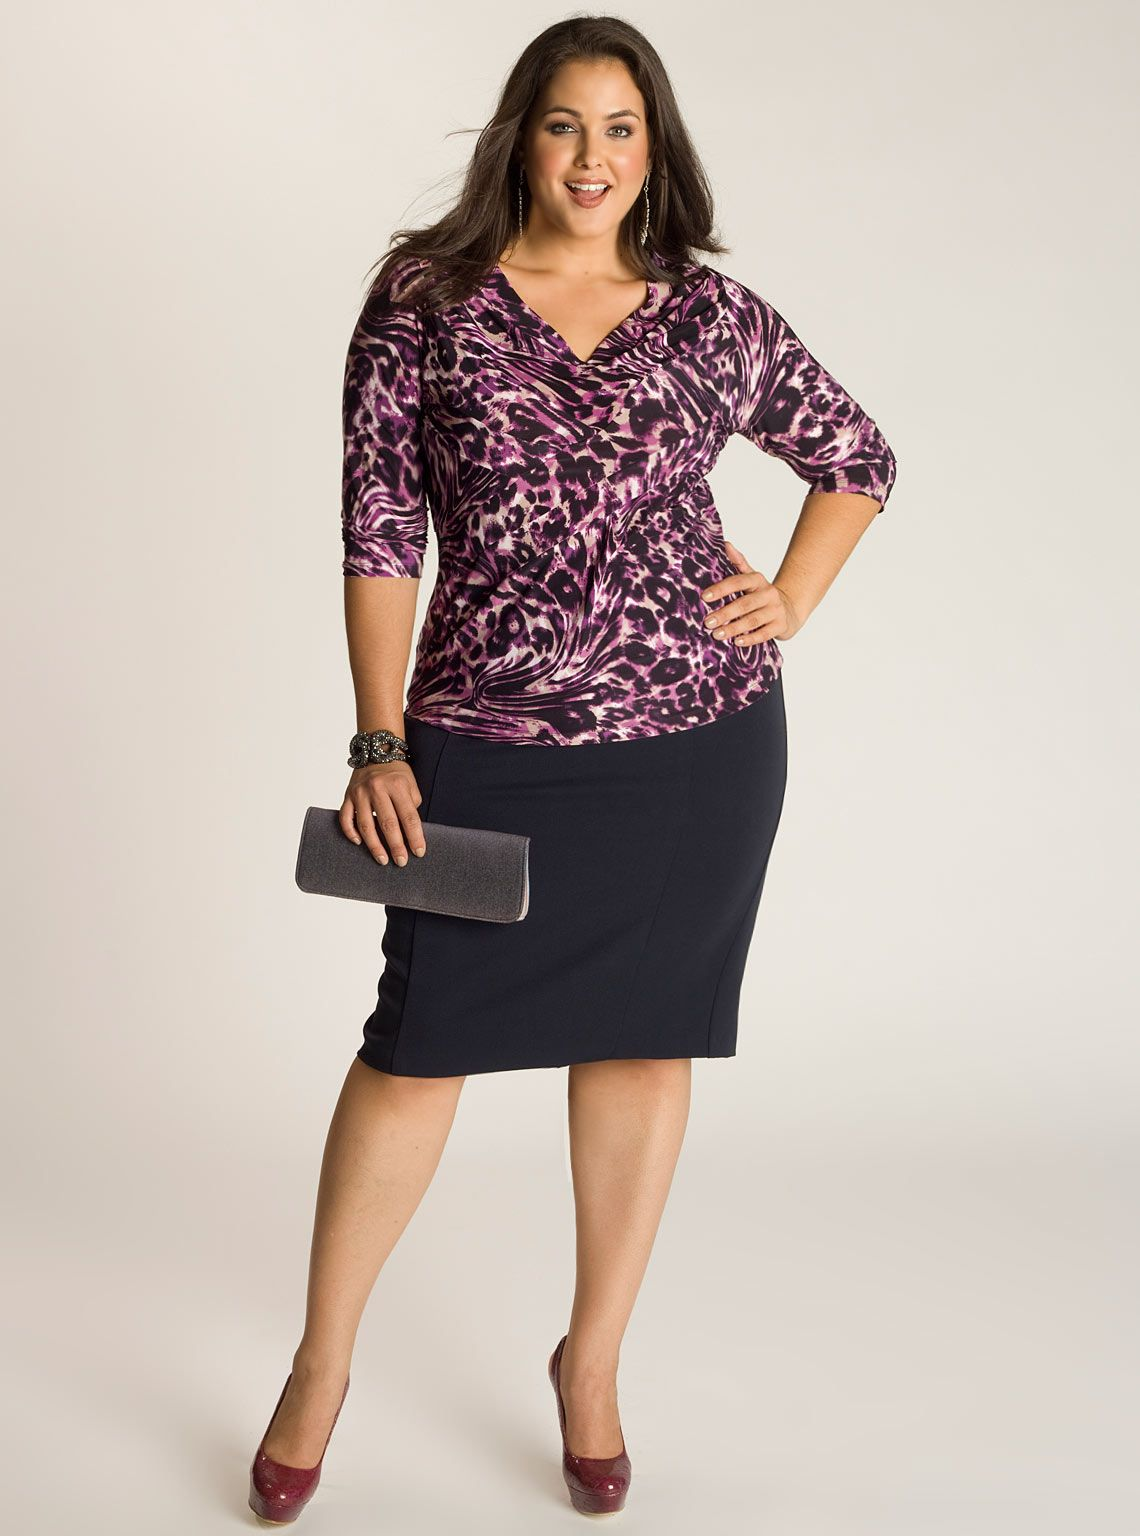 plus size skirts | monroe plus size skirt in navy blue | stylish